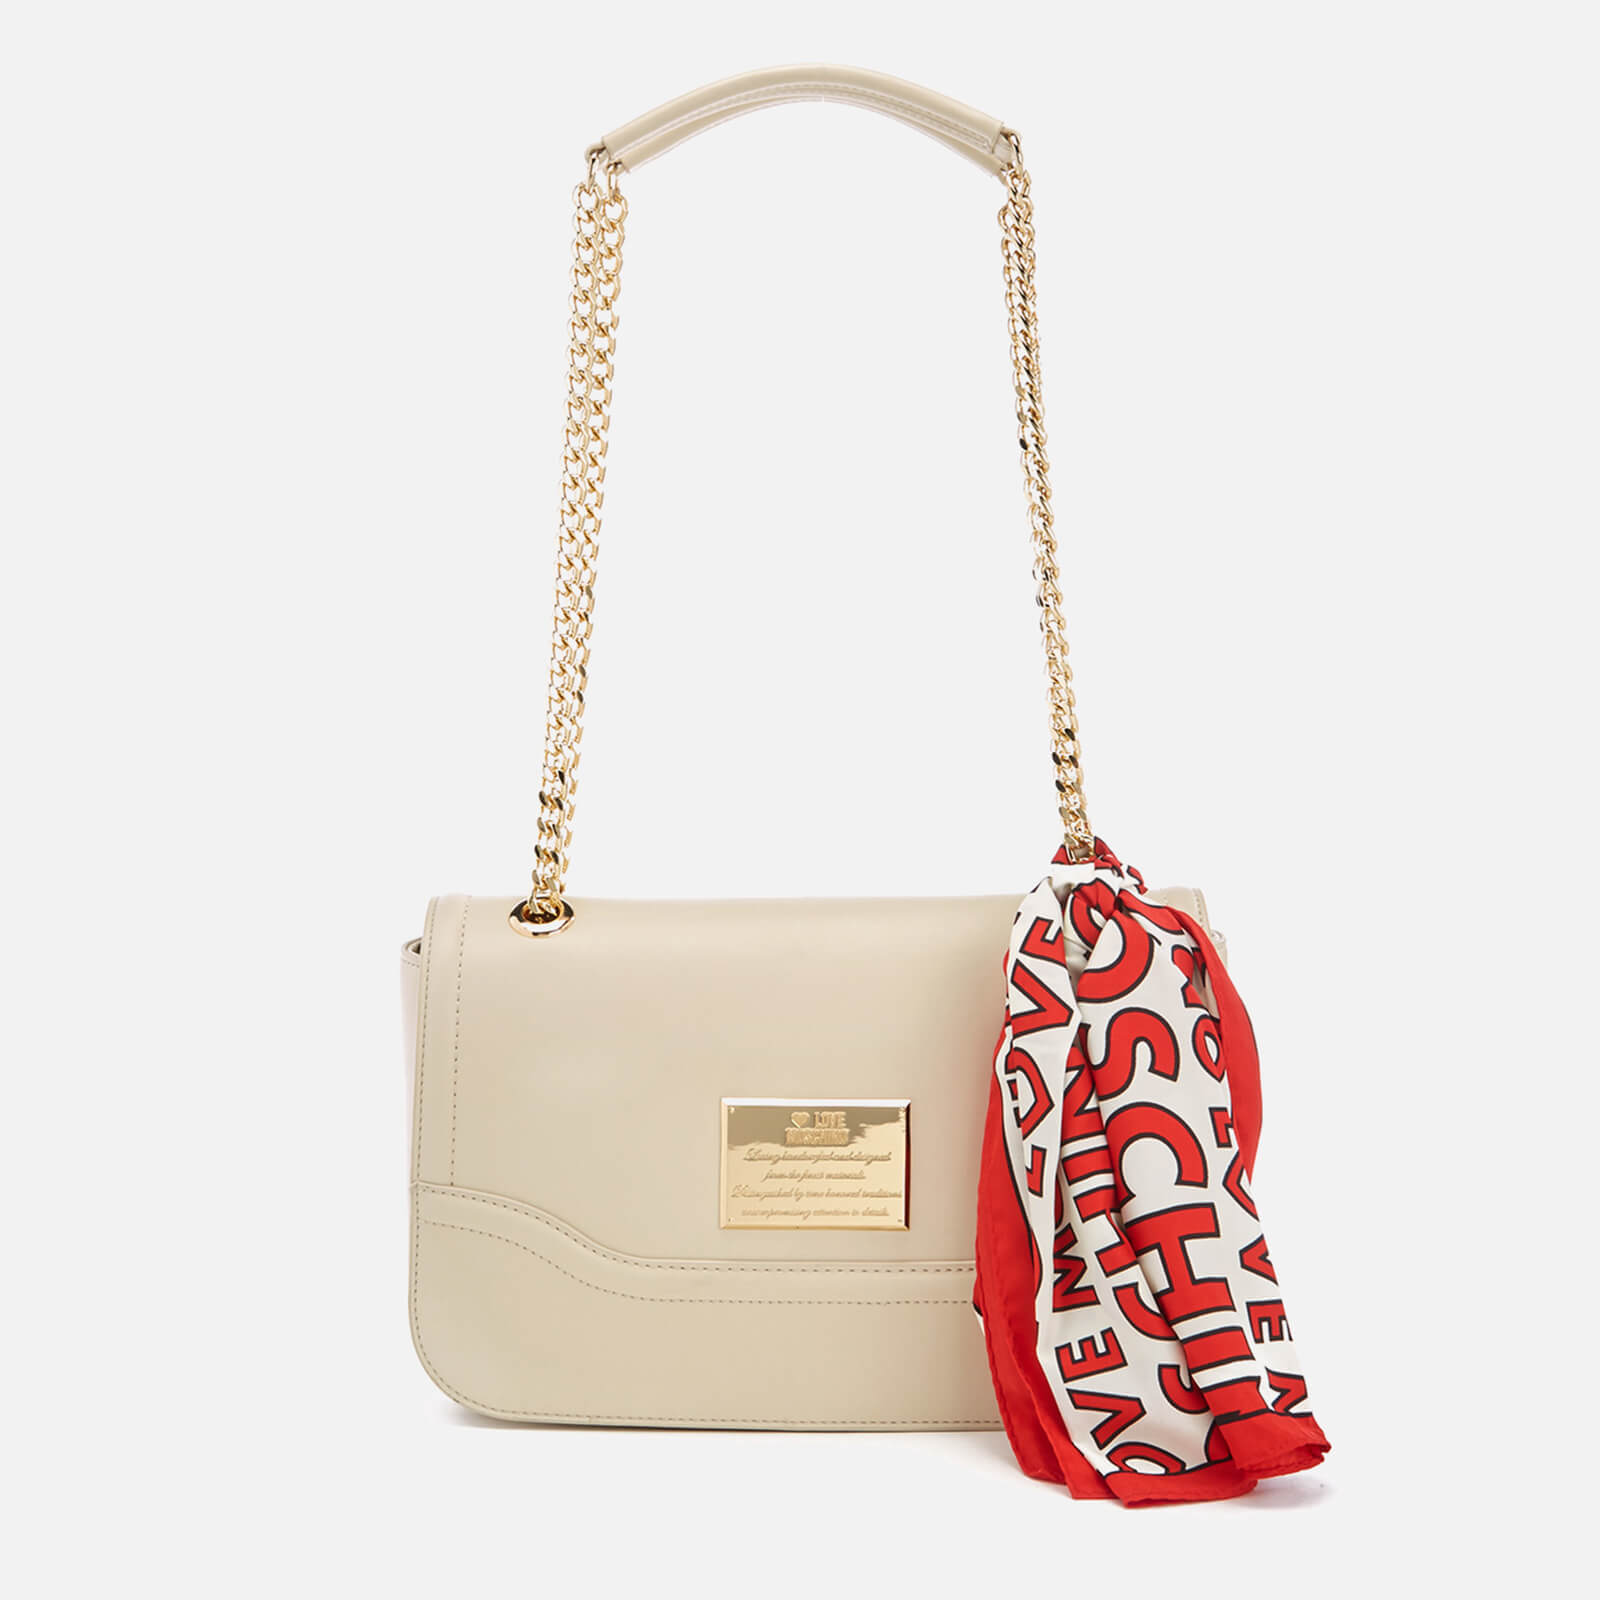 3e1c72476 Love Moschino Women's Shoulder Bag - Cream - Free UK Delivery over £50